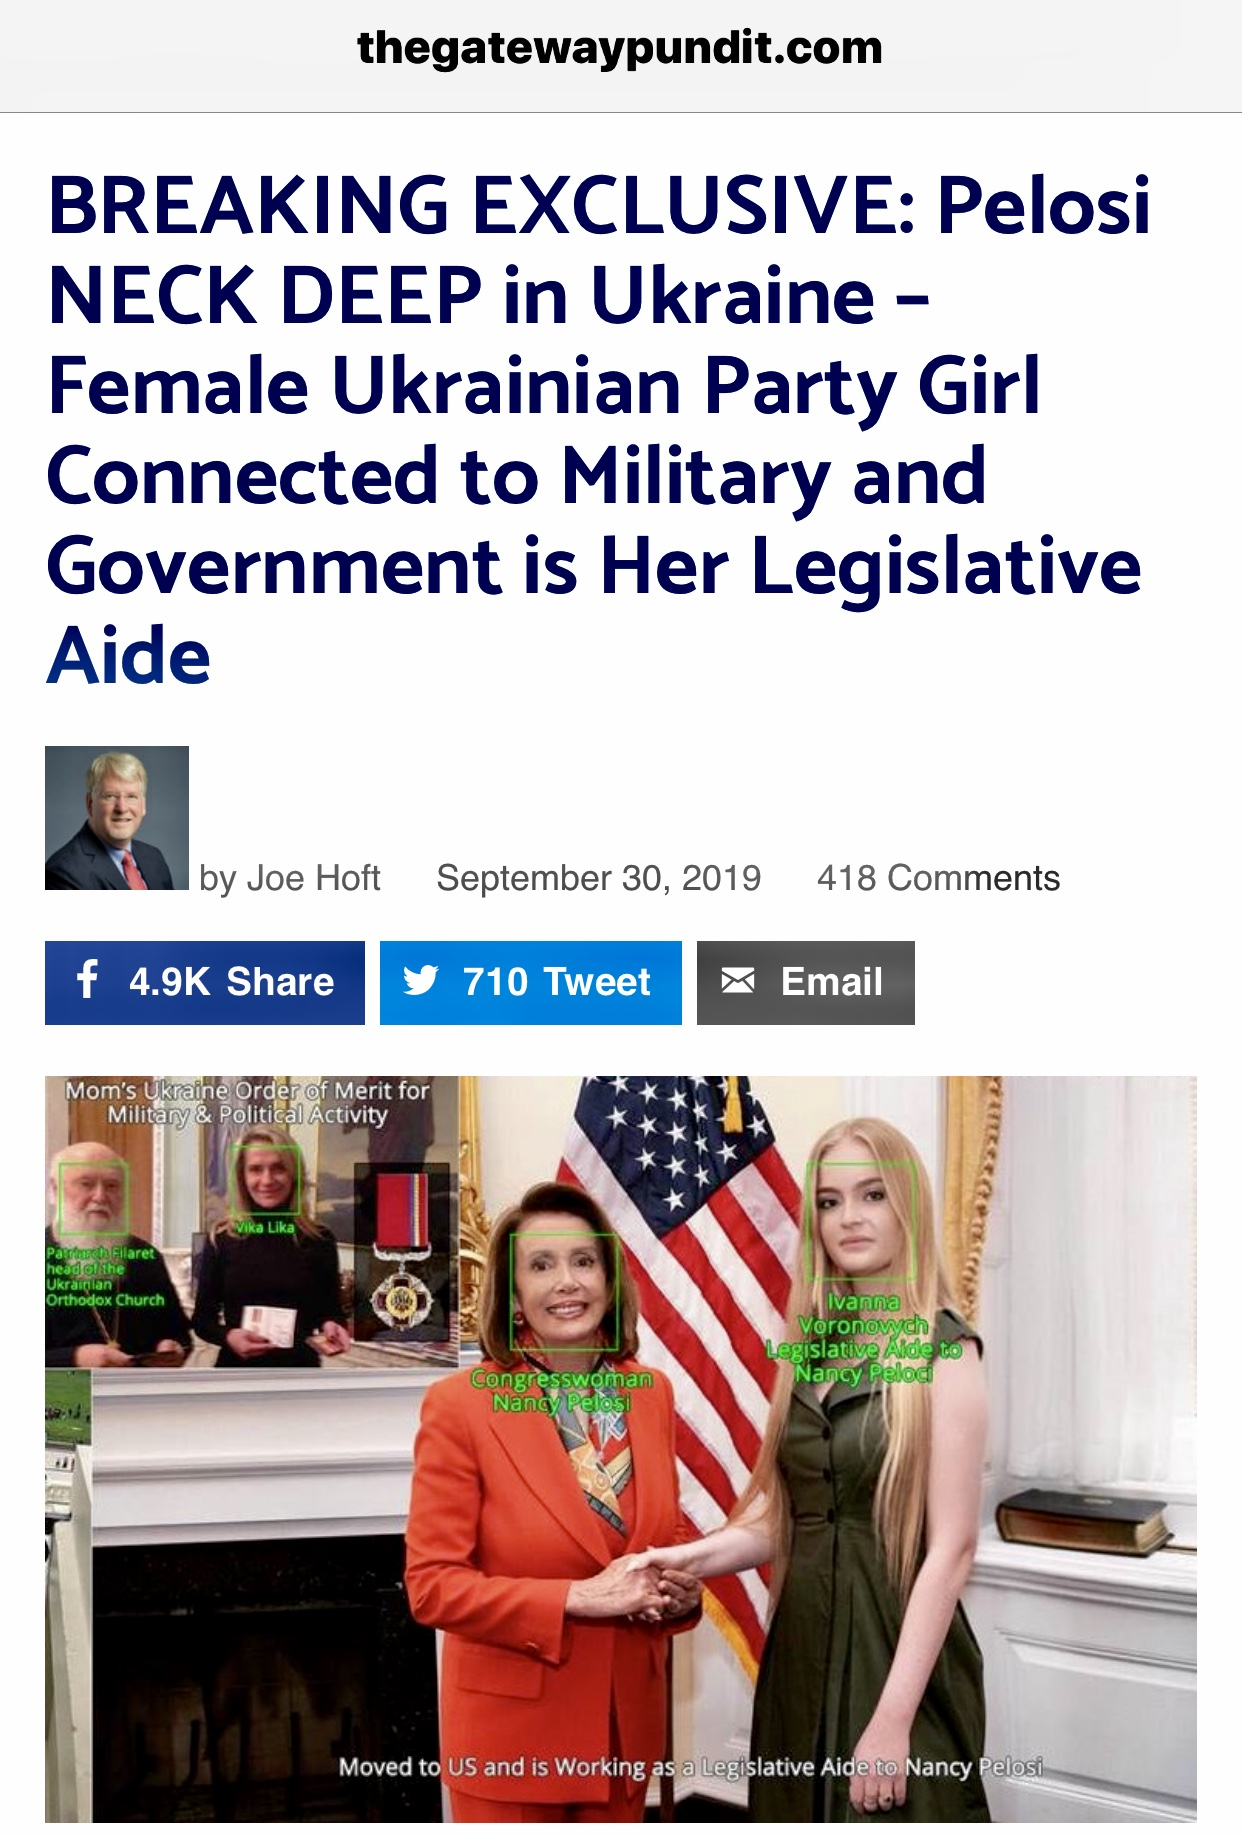 Pelosi's Female Ukrainian Aide Connected to Ukrainian Military & Govt